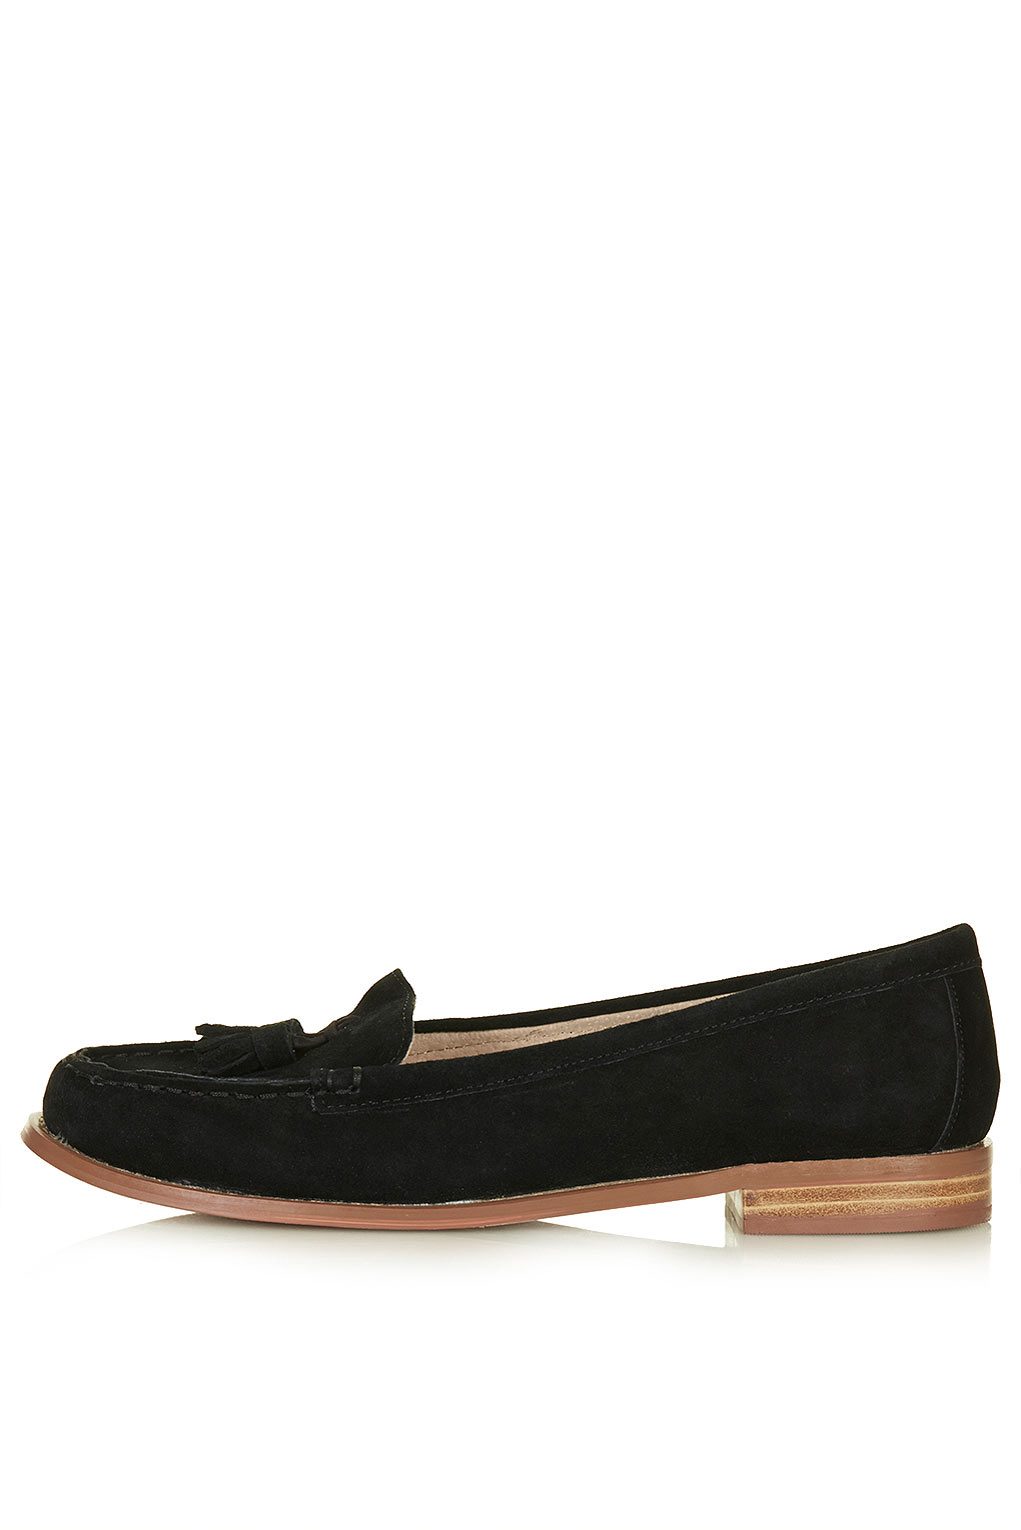 Lyst Topshop Womens Monument Tassel Loafers Black In Black